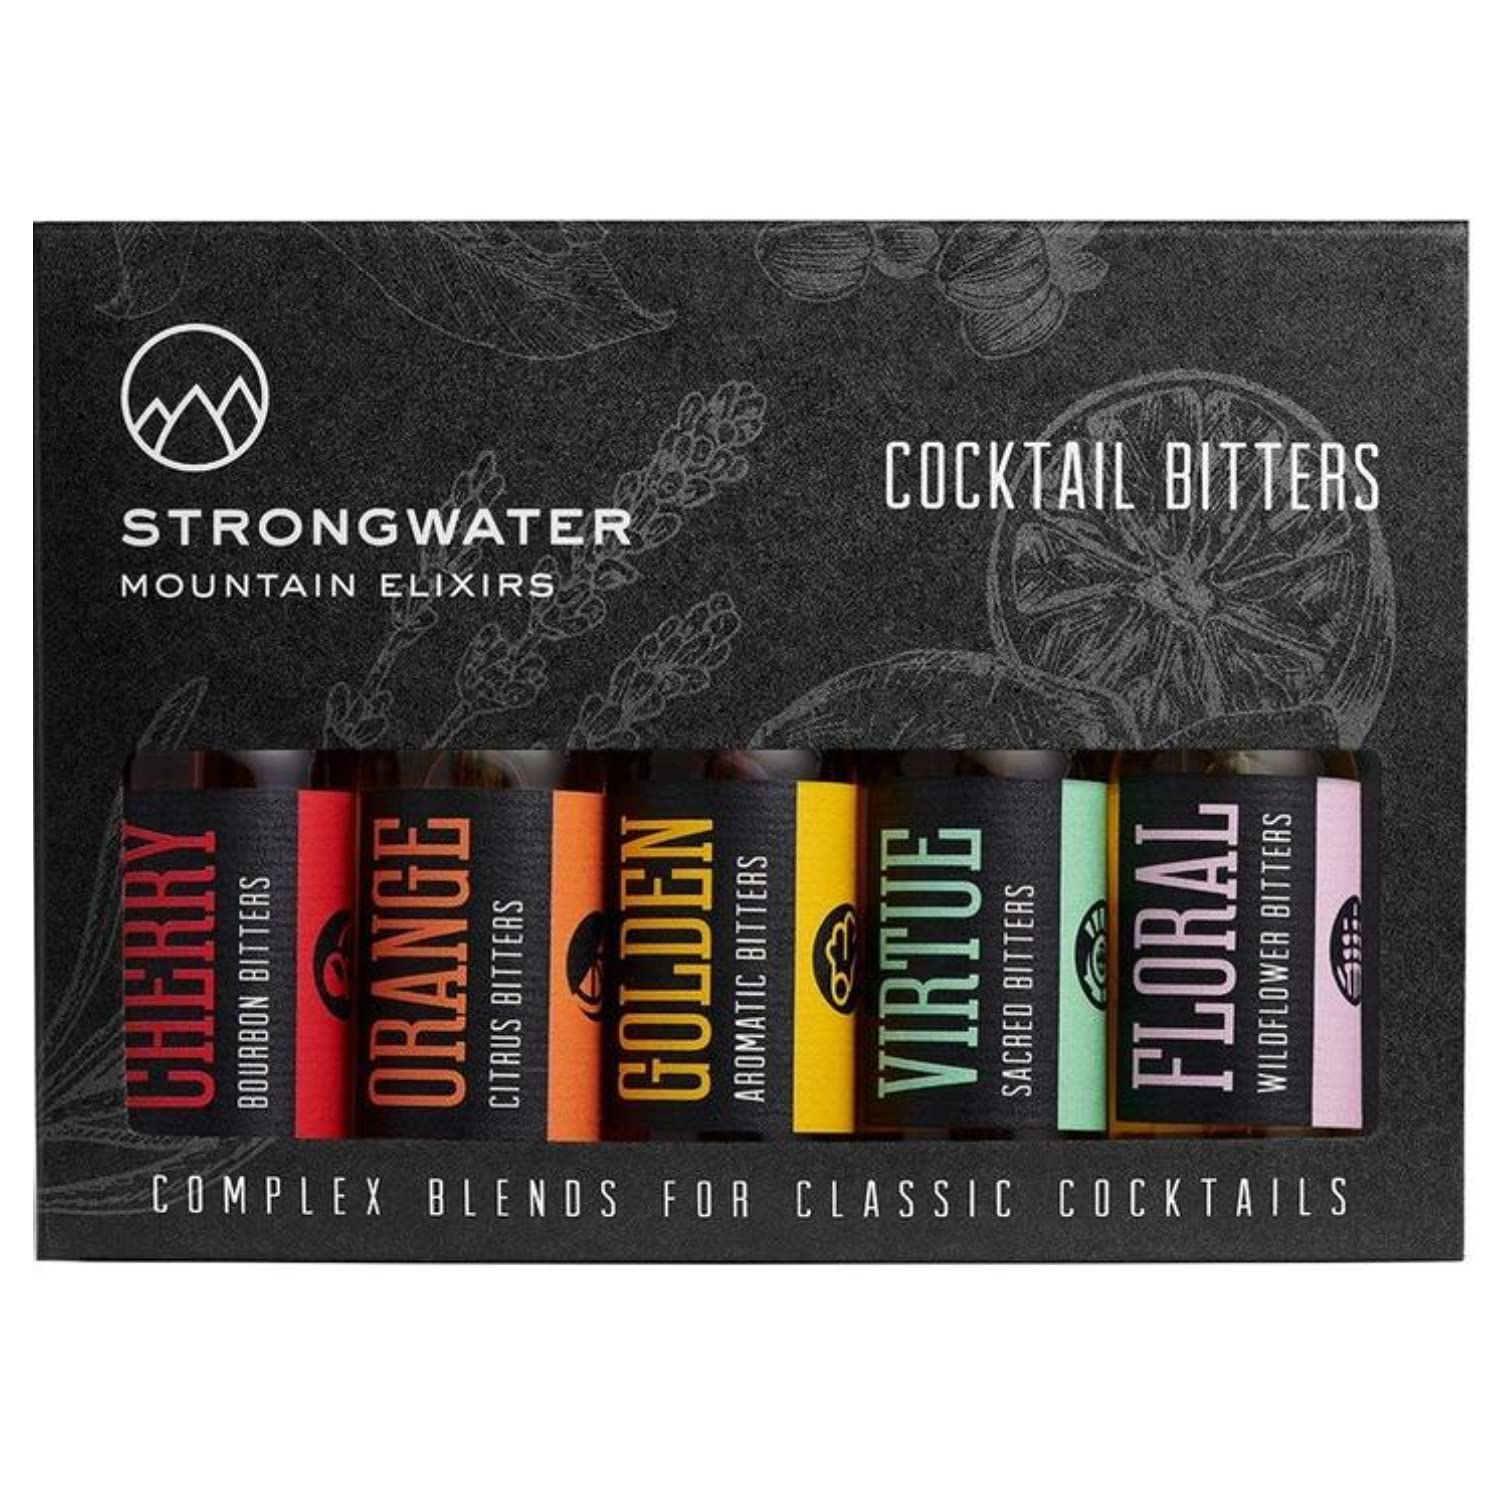 Strongwater All items free shipping Cocktail Bitters Sampler - Fashion Old 5 for Low price